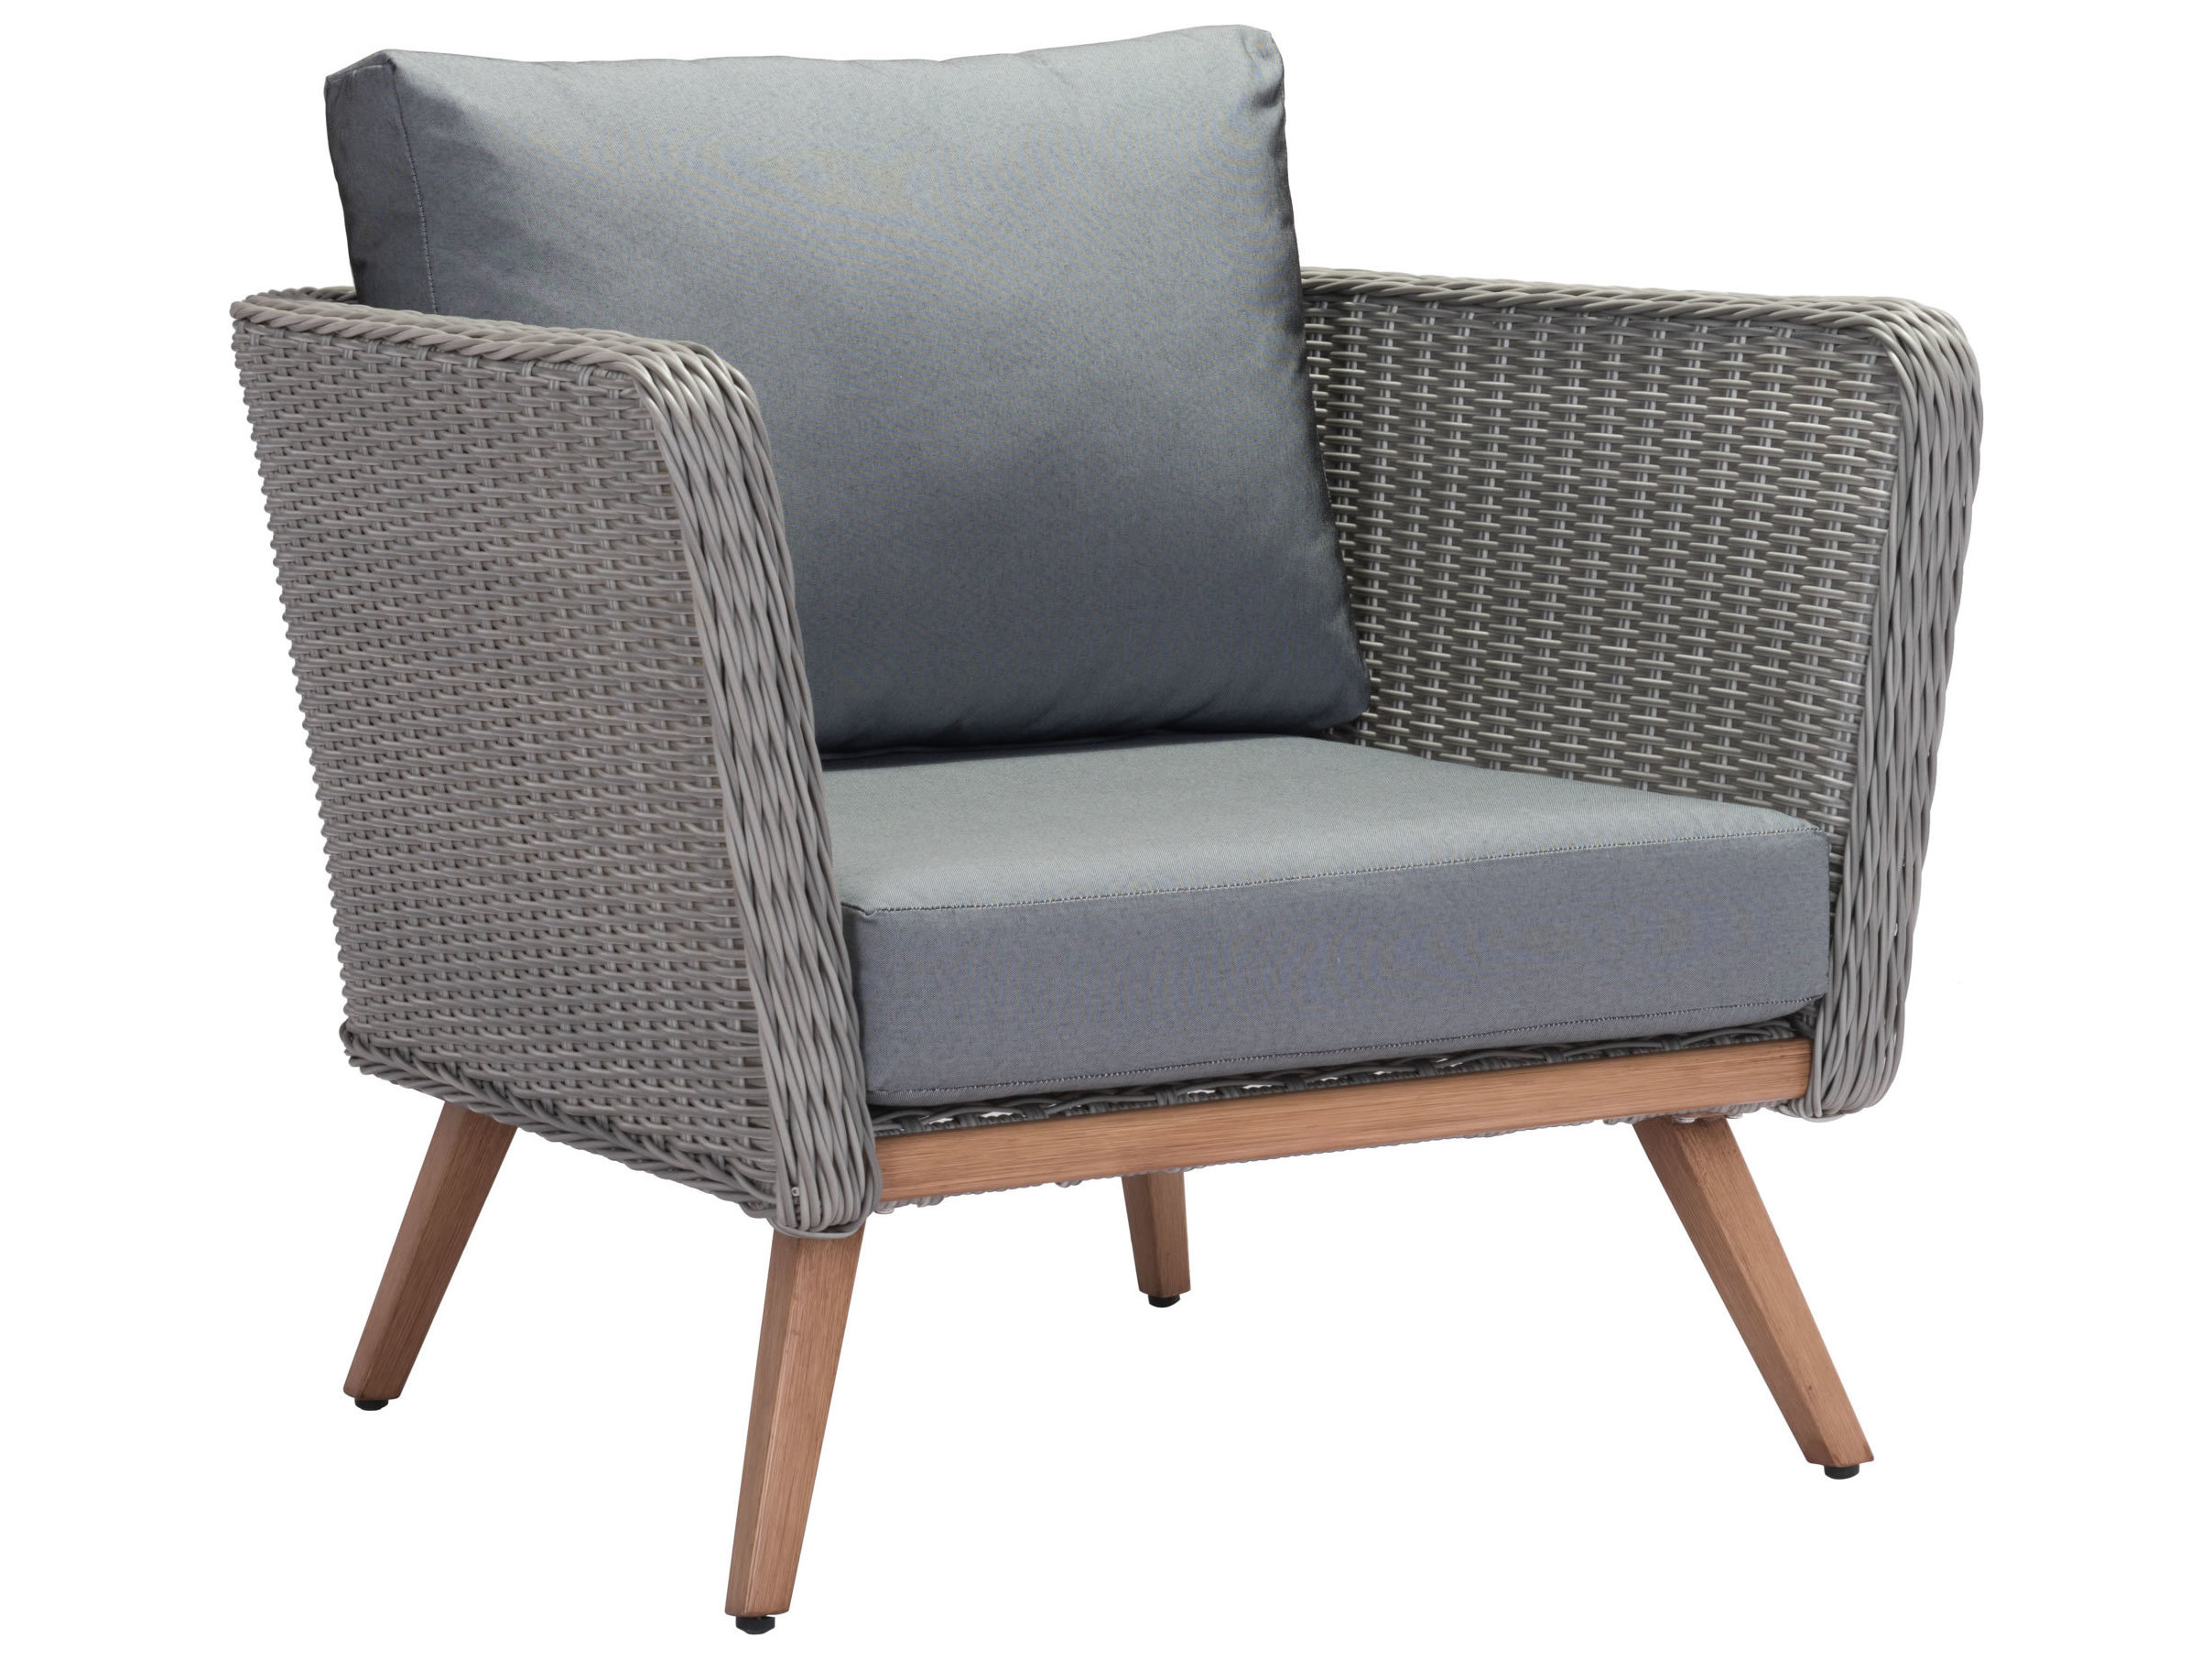 Sensational Zuo Outdoor Monaco Wicker Lounge Chair In Natural Gray Pabps2019 Chair Design Images Pabps2019Com